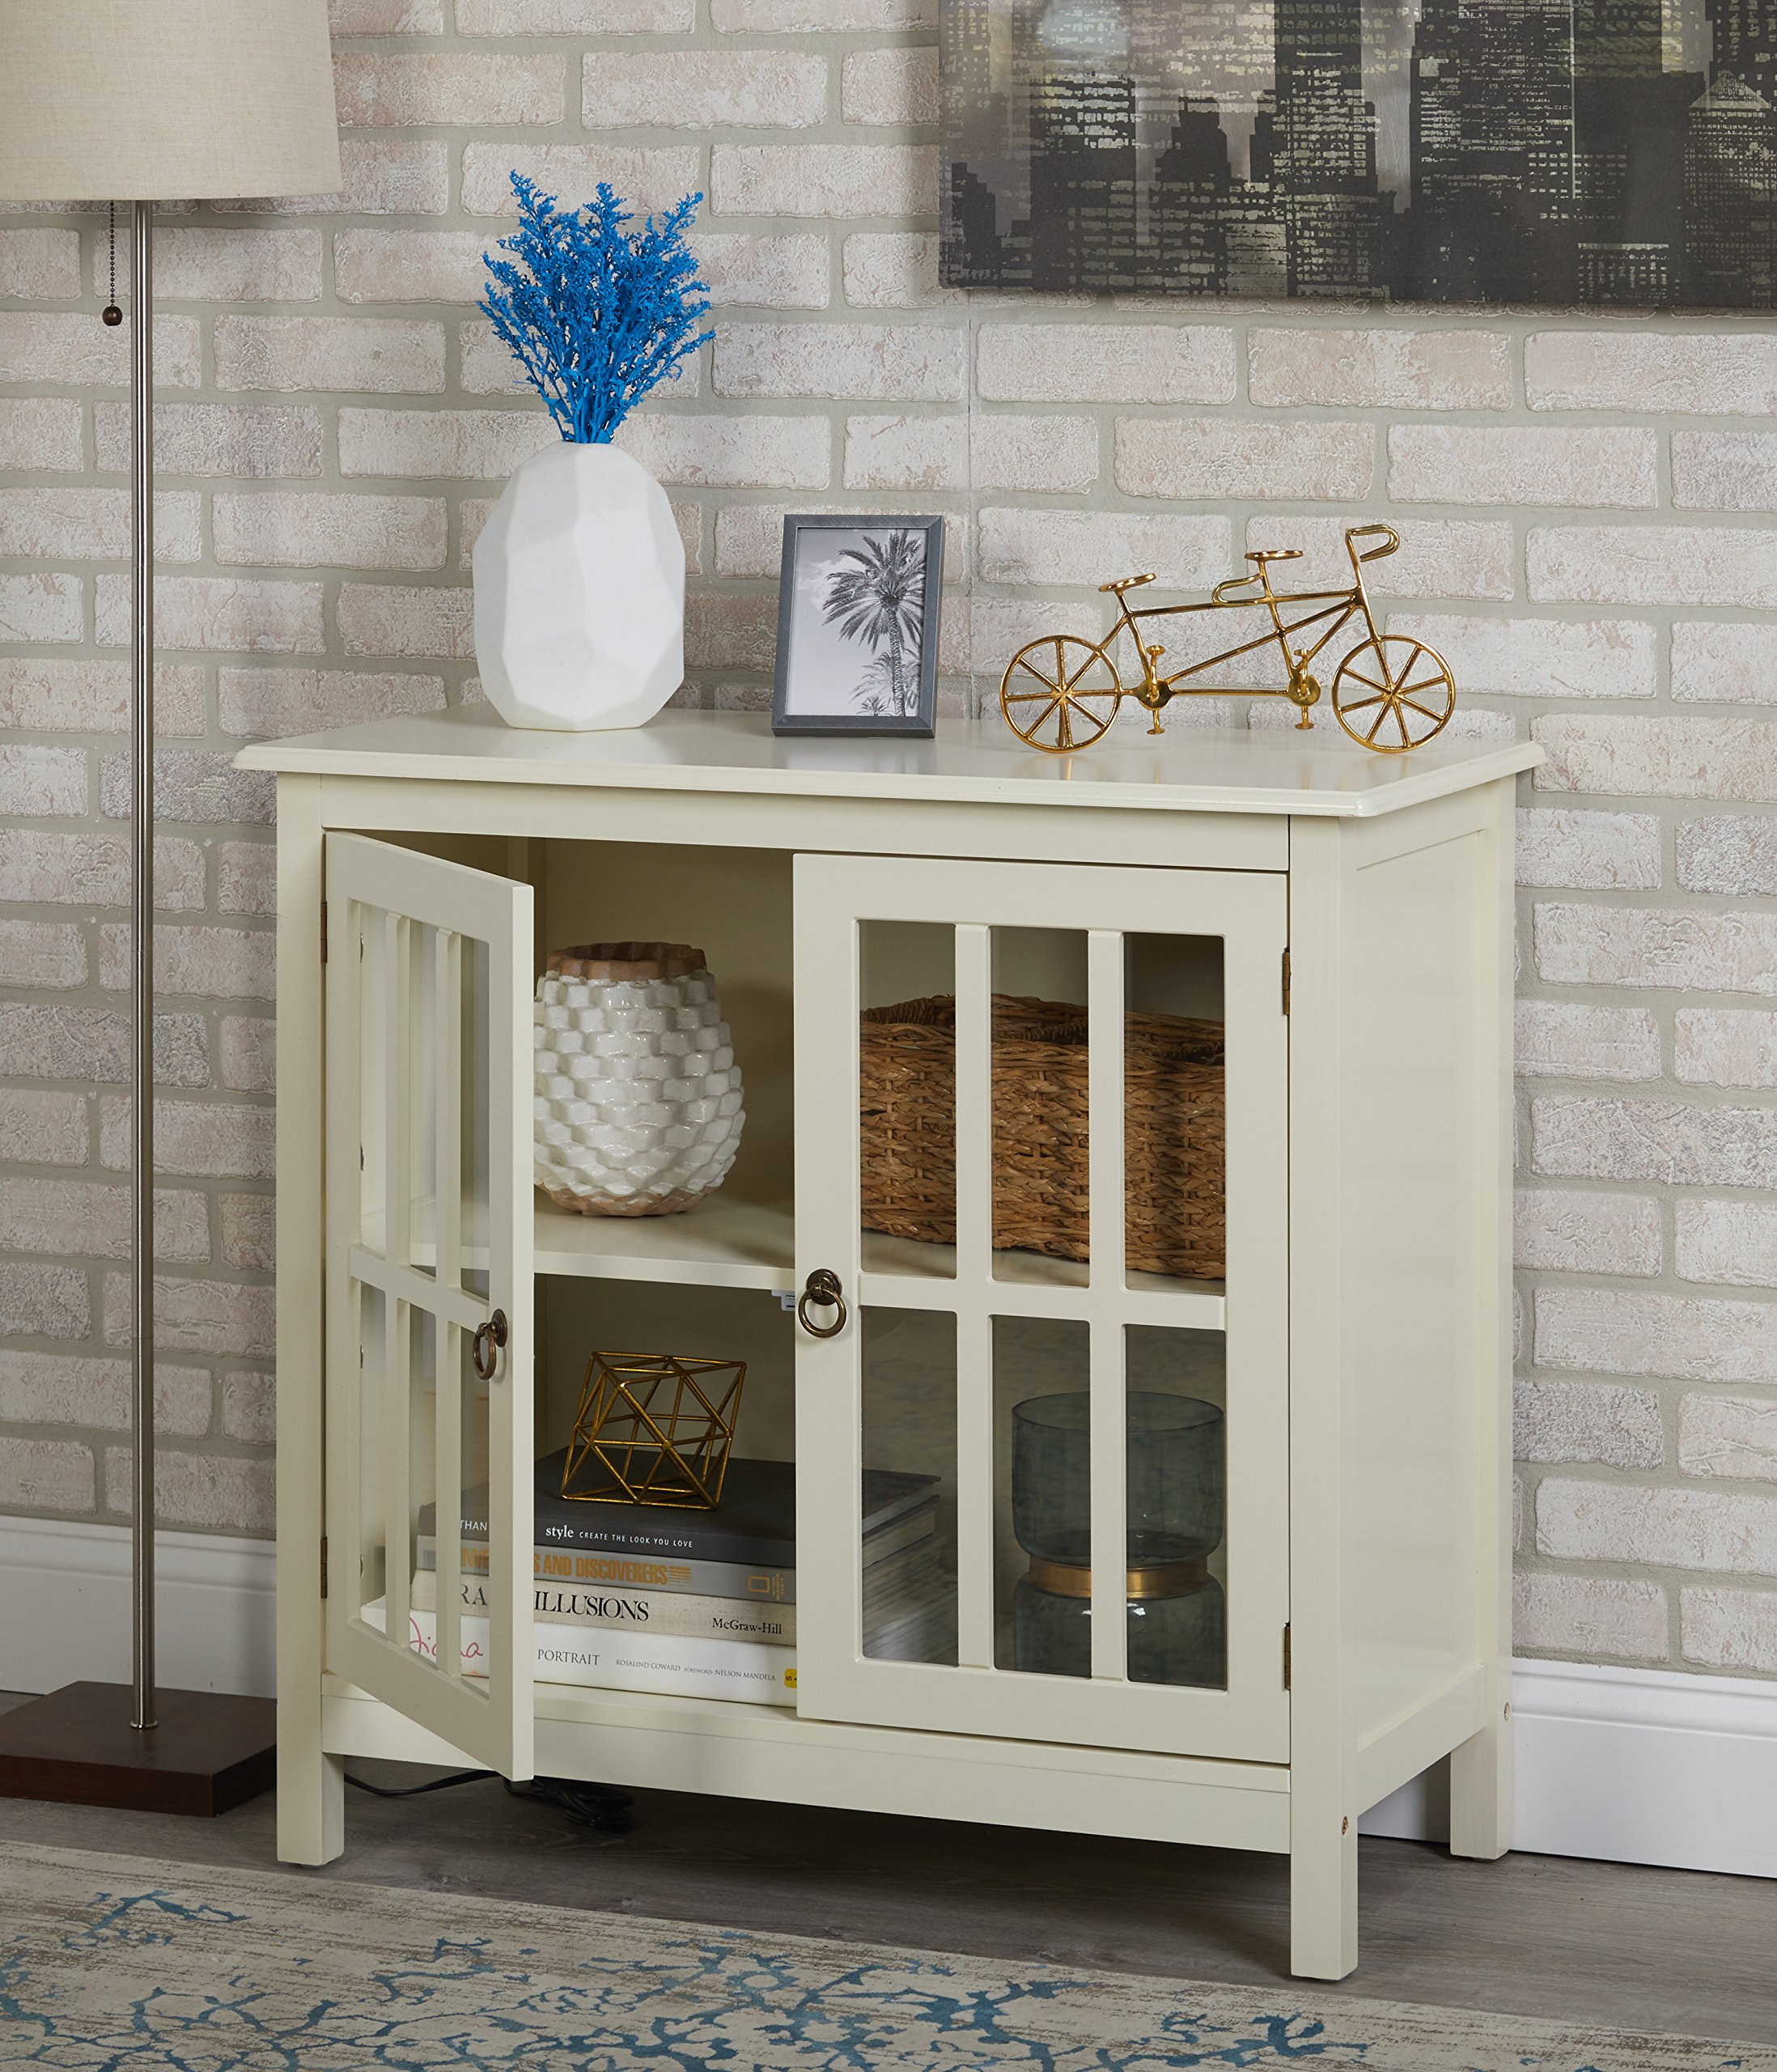 HnG Small Glass Door Cabinet Display Antique White Wood 2 Door 2 Shelf Curio Buffet Vintage Strong and Sturdy